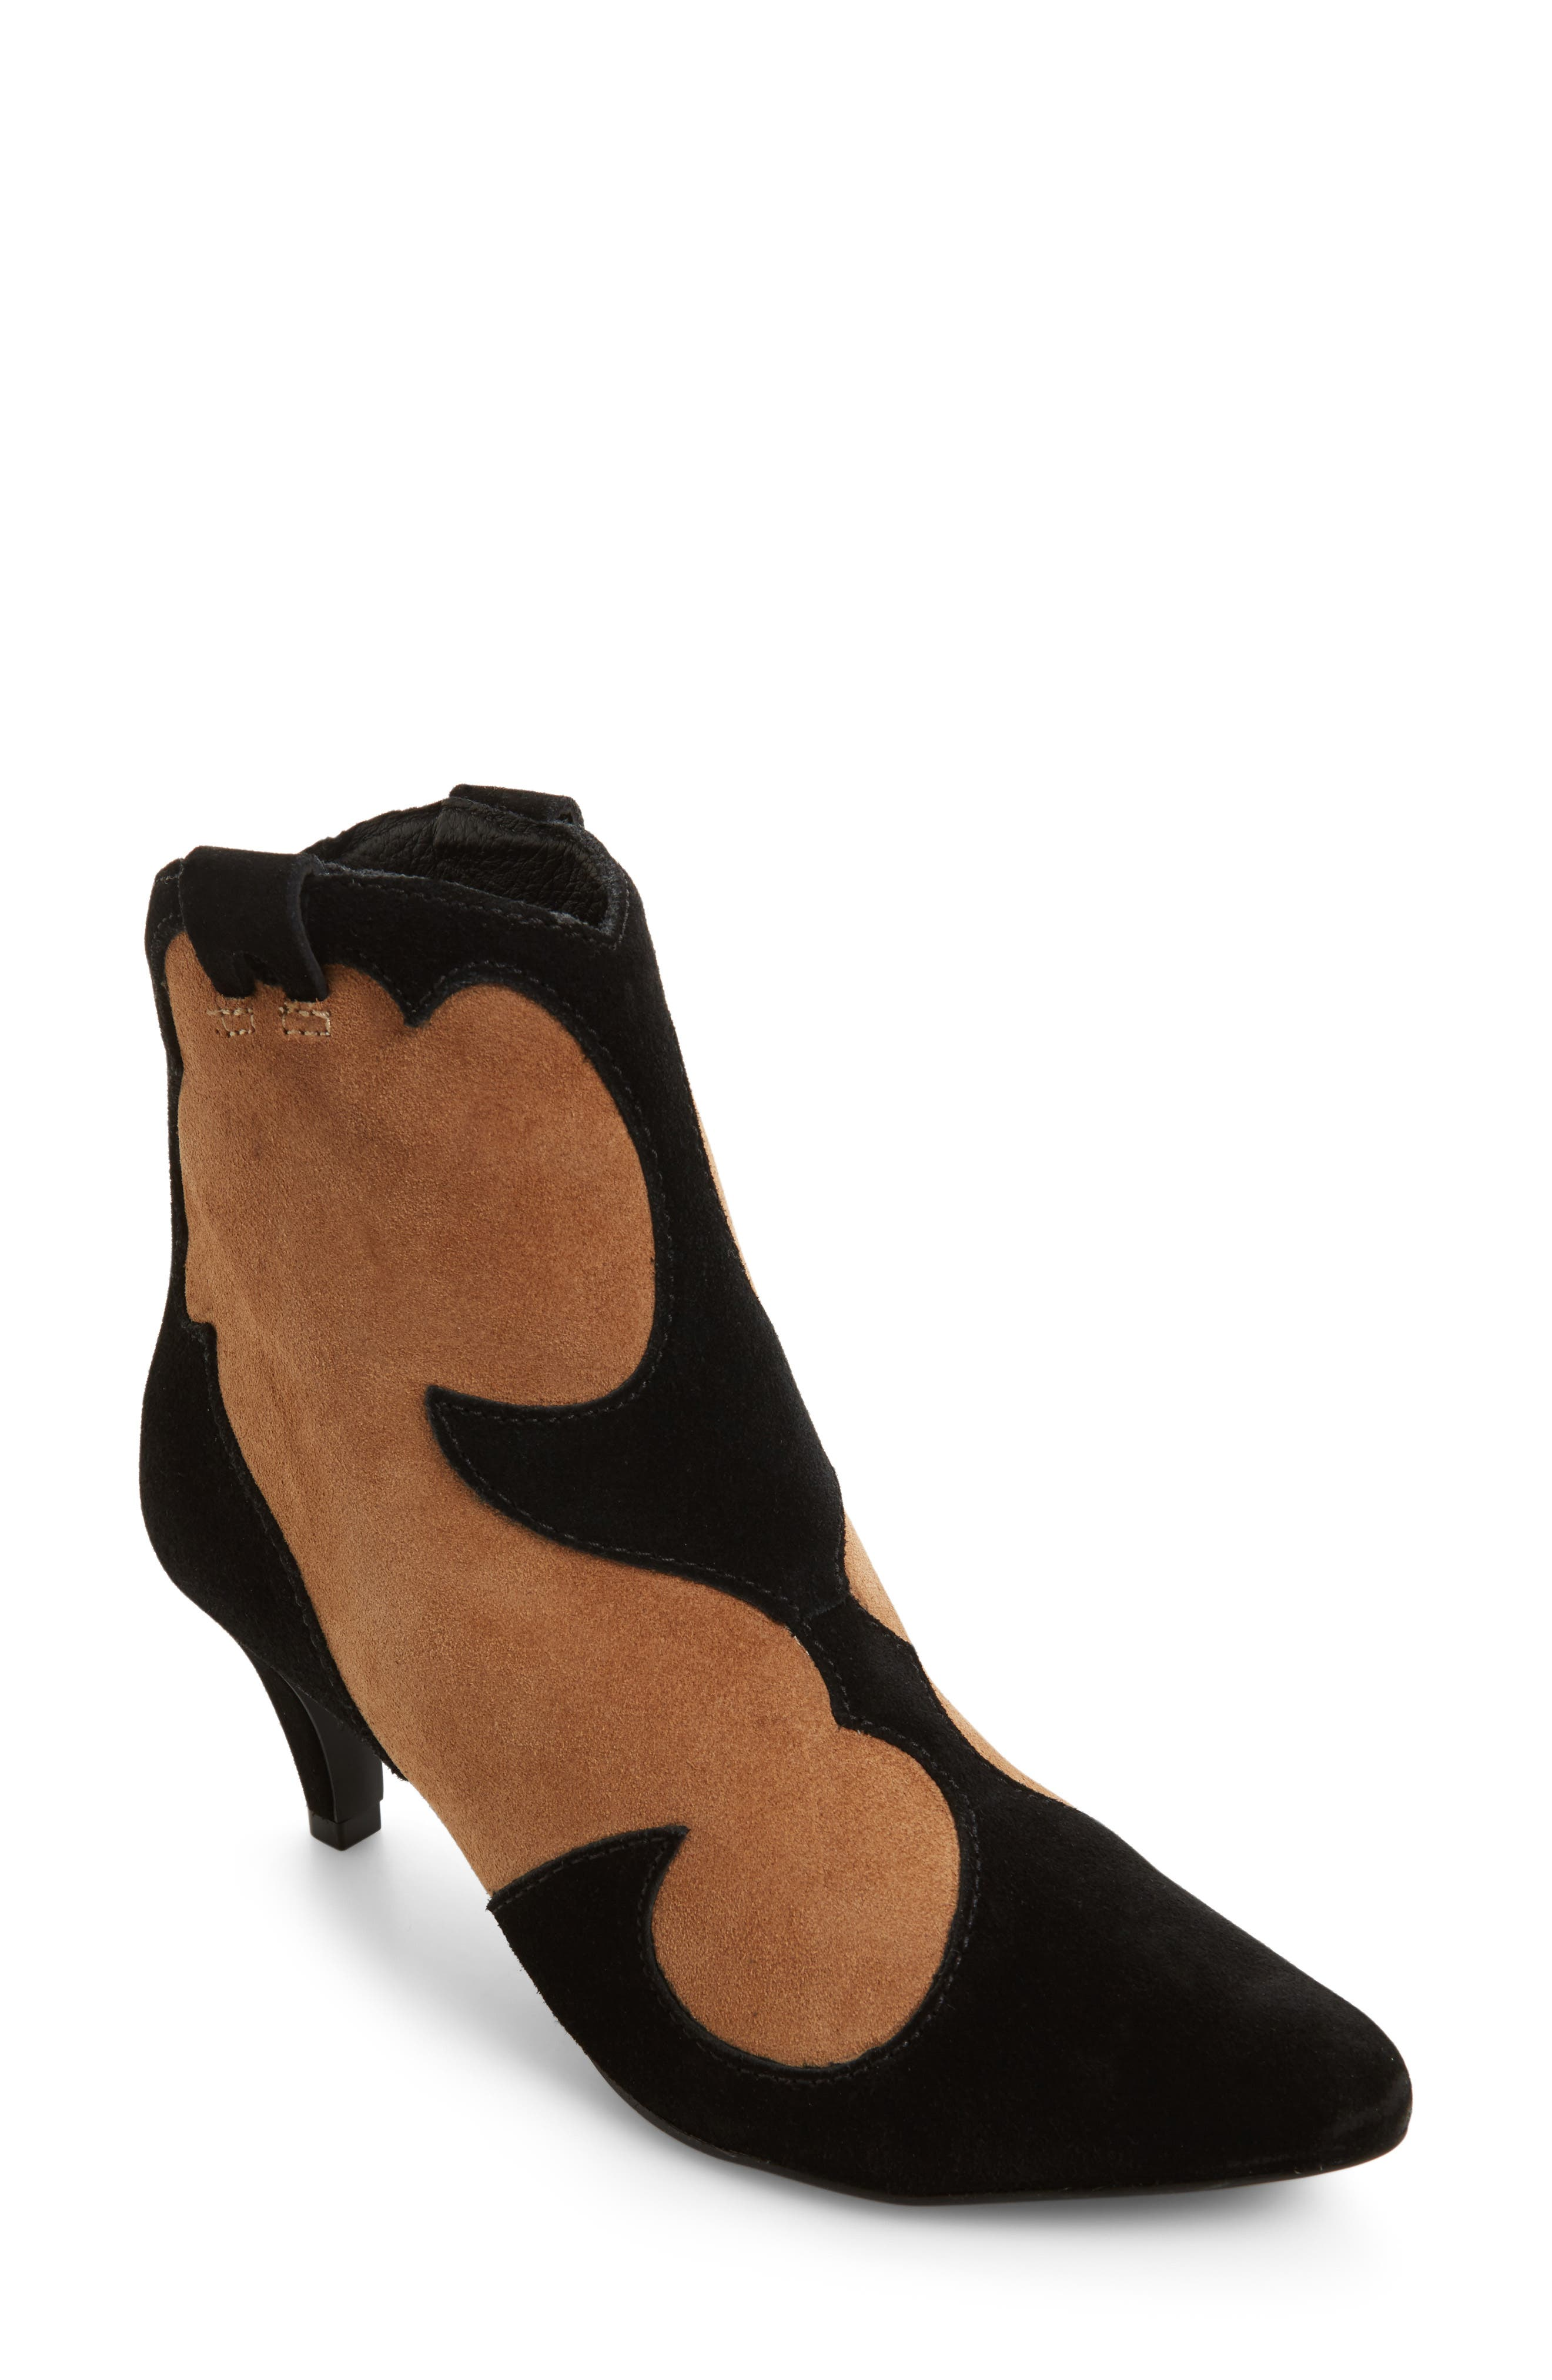 Alternate Image 1 Selected - Matisse Majesty Two-Tone Bootie (Women)